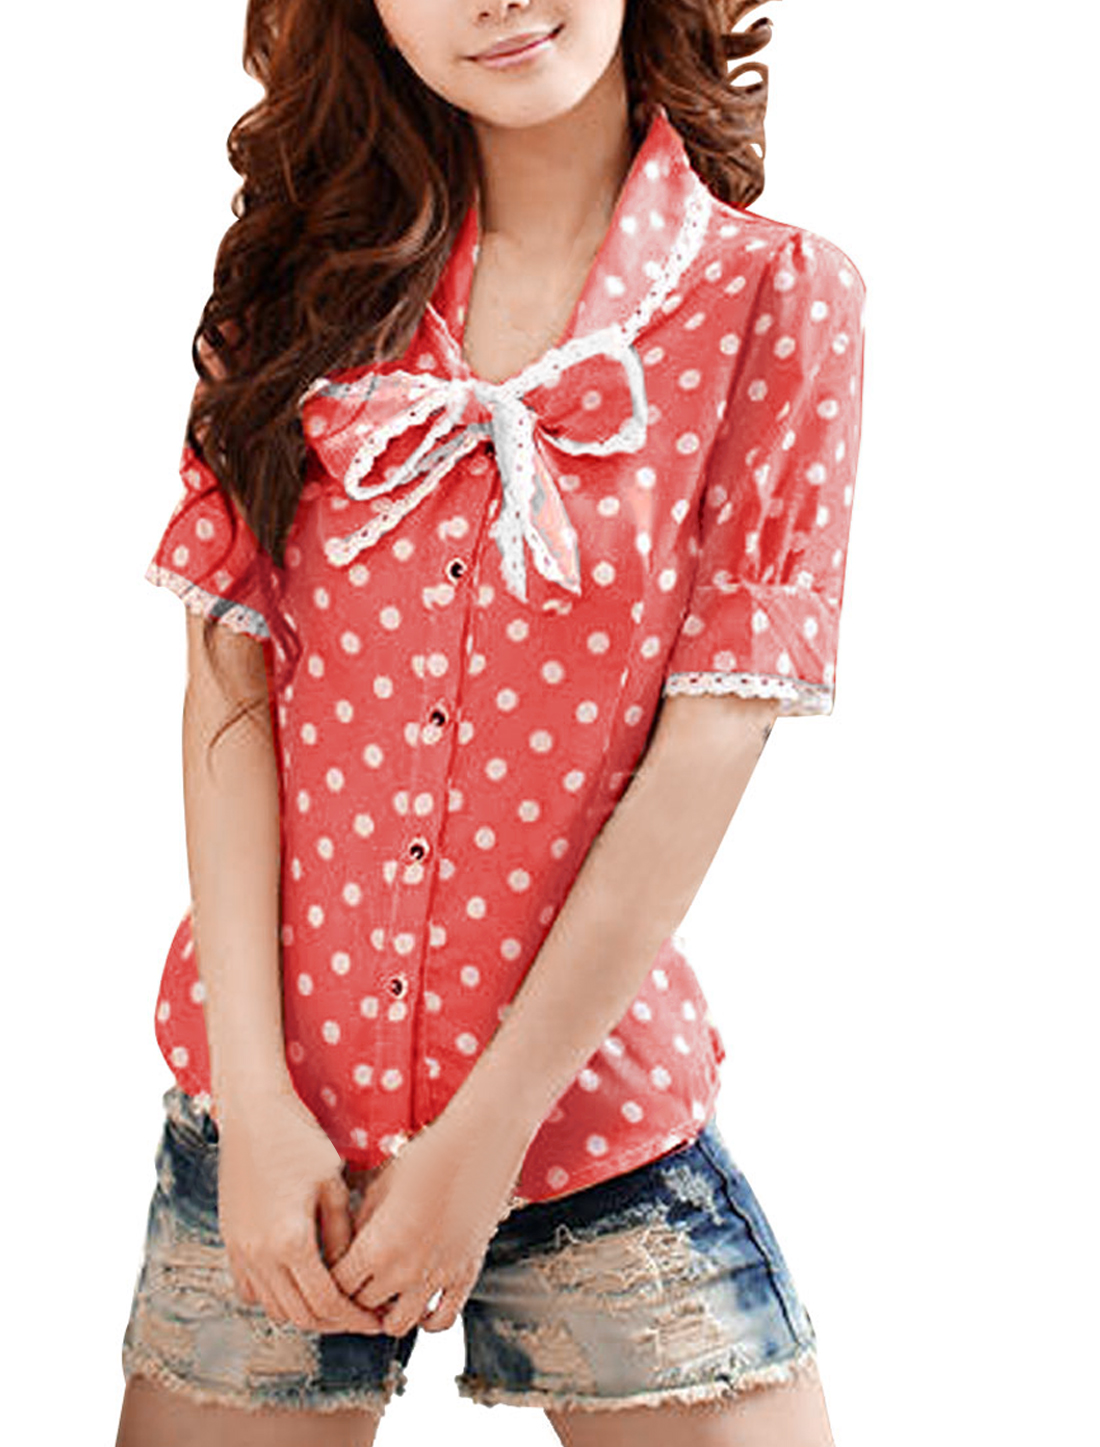 Ladies Chic Self Bow-Tie Neck Short Sleeve Watermelon Red Blouse L